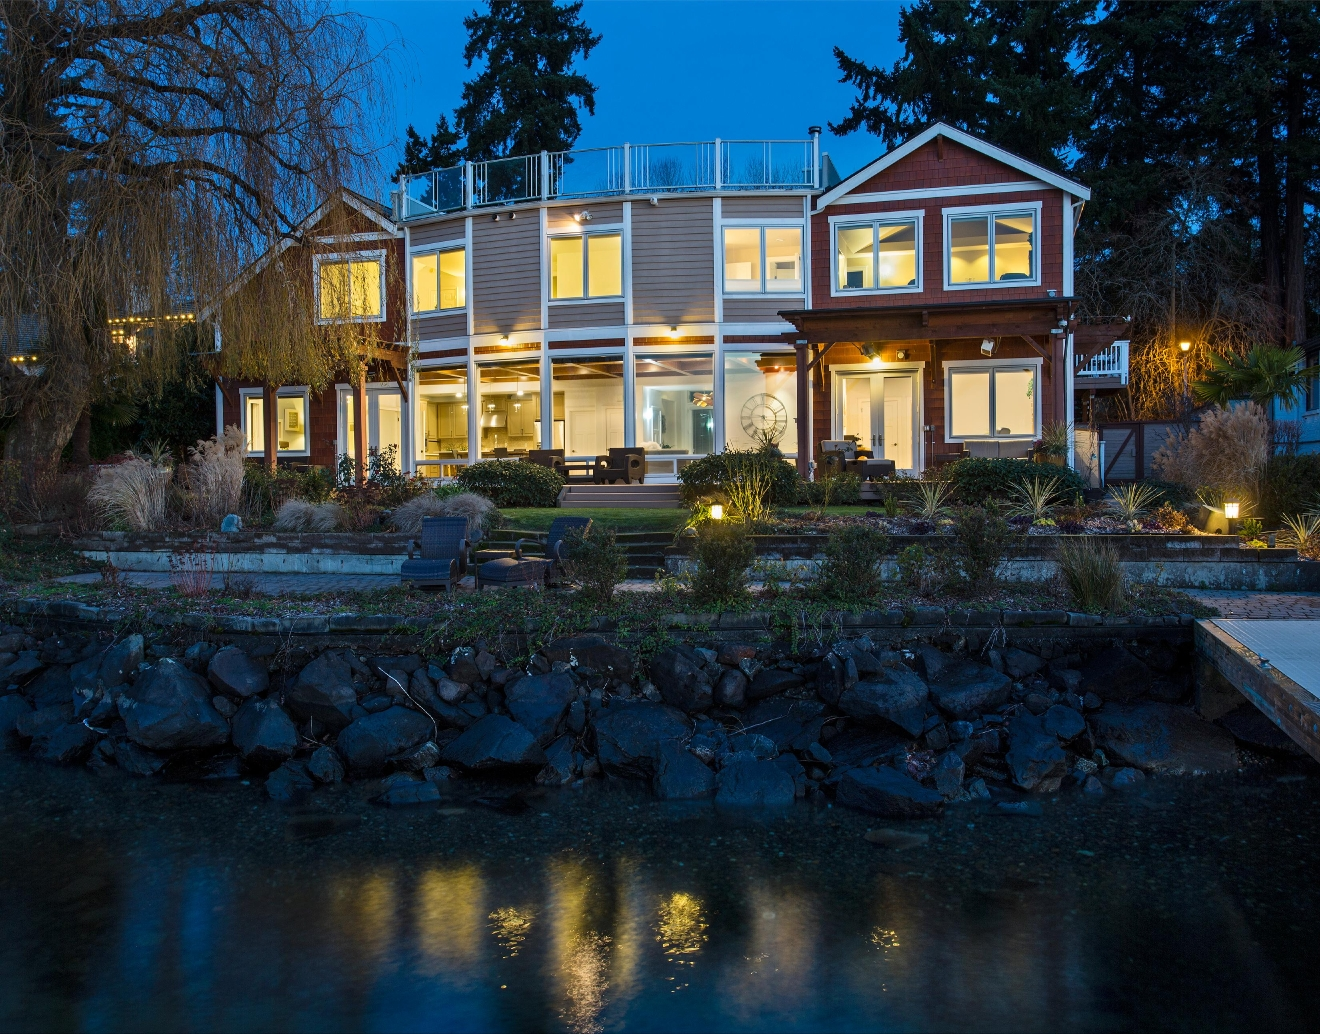 This beautiful Bennion Deville home is the epitome of lakefront luxury. The home is located on Lake Washington's Juanita Bay and has a large dock on 1.3 acres. Listed at $3,598,000 - the 5,330 square foot craftsman has 5 bedrooms and 4.25 baths. Not to mention;  the view is SO drool-worthy. I mean can you imagine sitting pretty in this home during the summers?! That is living. Visit bdluxecollection.com/2025-rose-point-lane/ for more info. (Image: Bennion Deville)